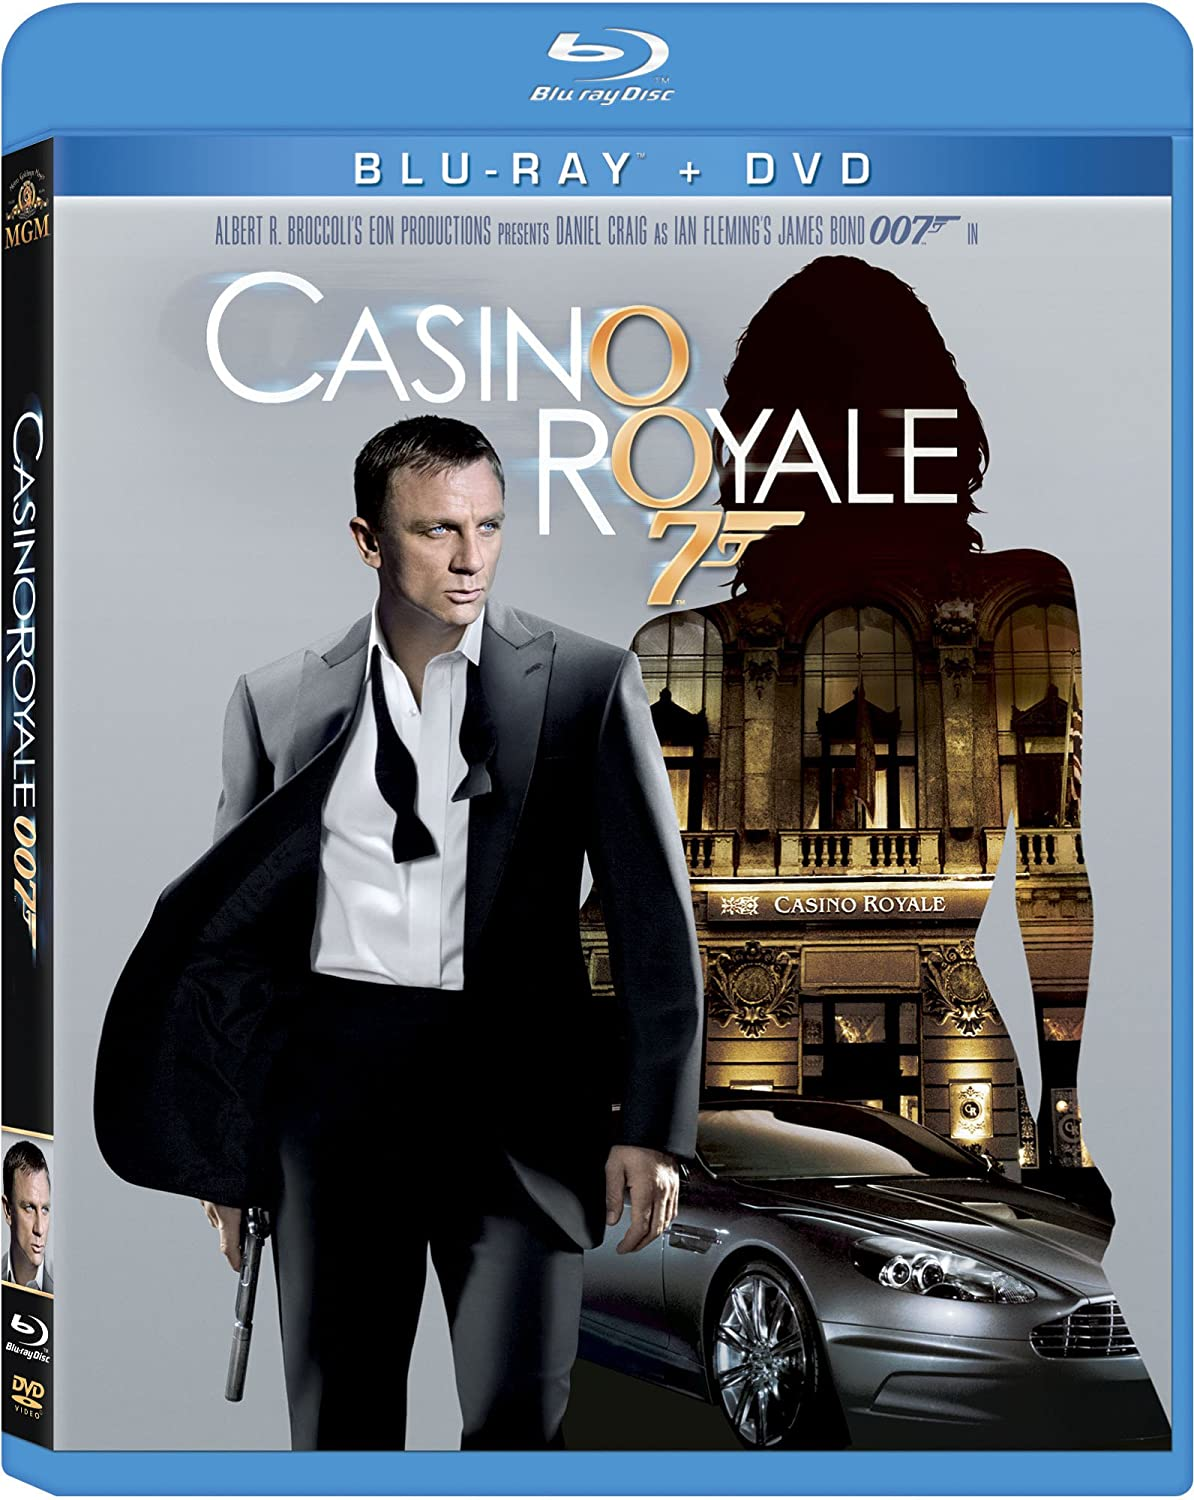 Casino royale online spanish subtitles mgm casino chip